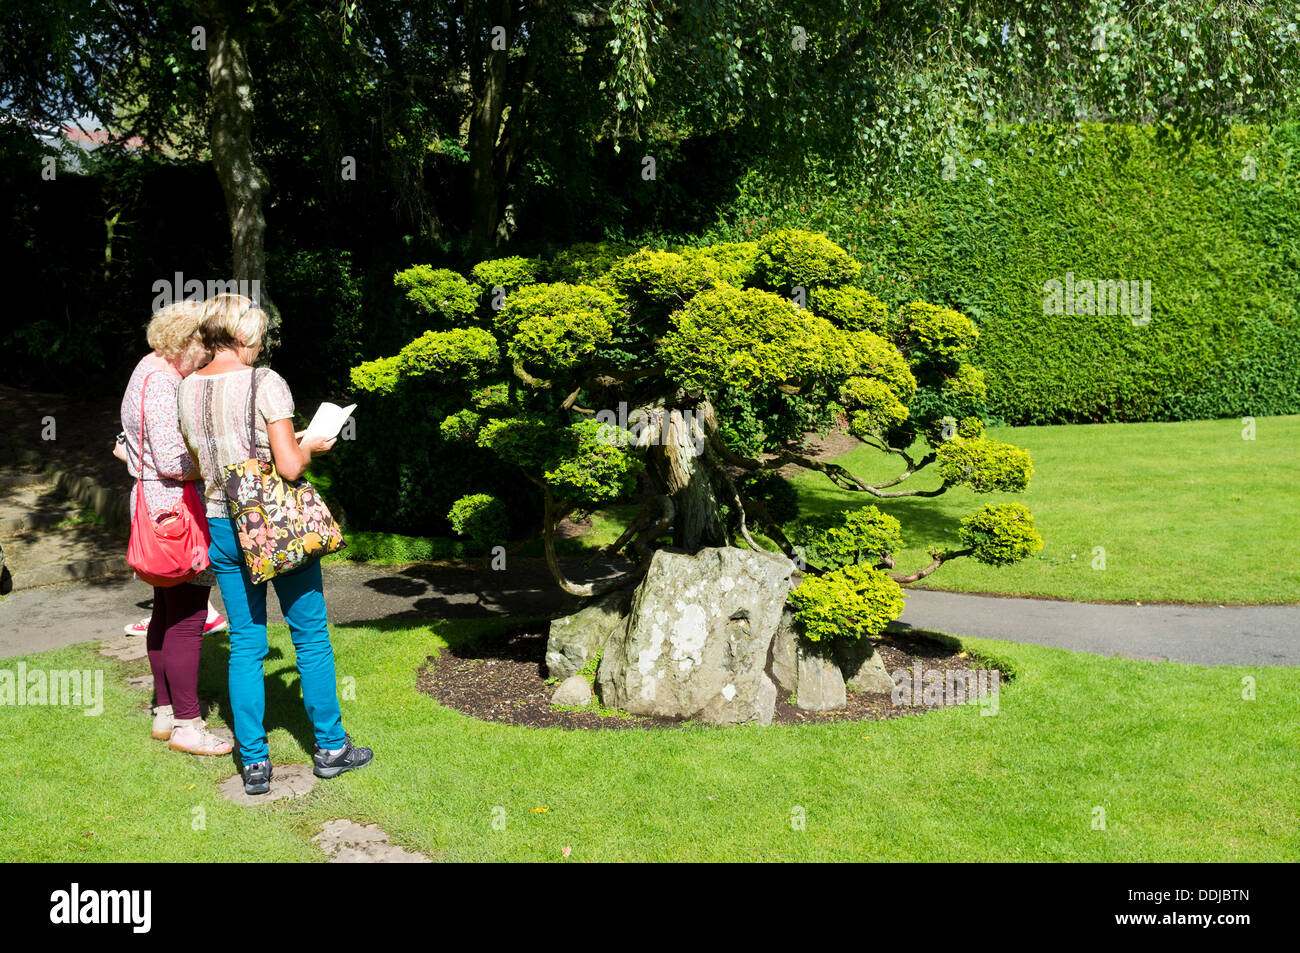 Tourists consult a guide book at the Japanese gardens, Kildare. Chamaecyparis obtusa, aurea tree next to them. Ireland. - Stock Image